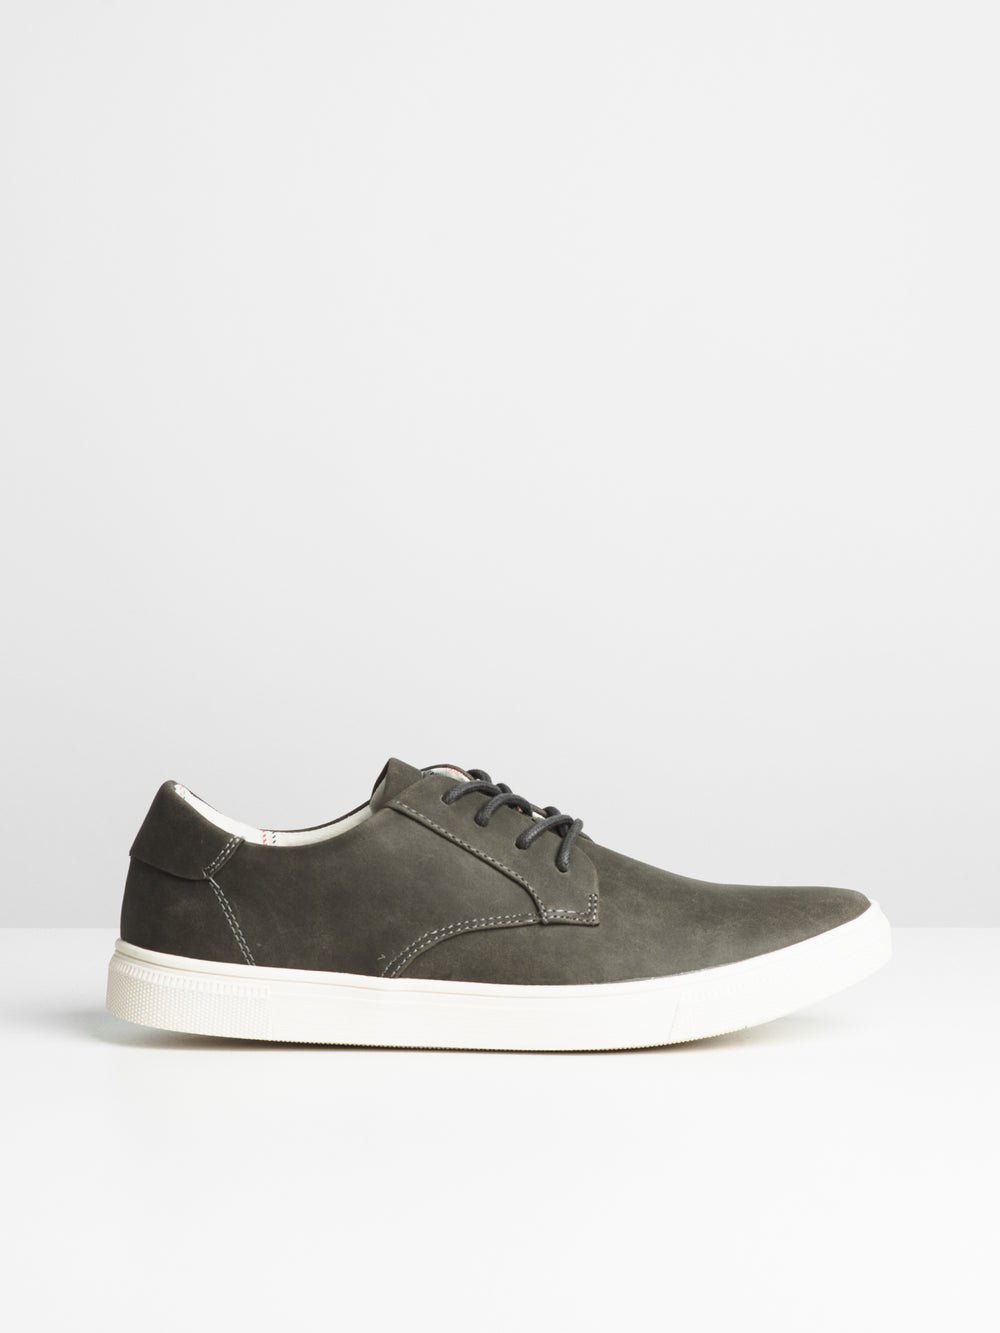 MENS LUKE - GREY-D1